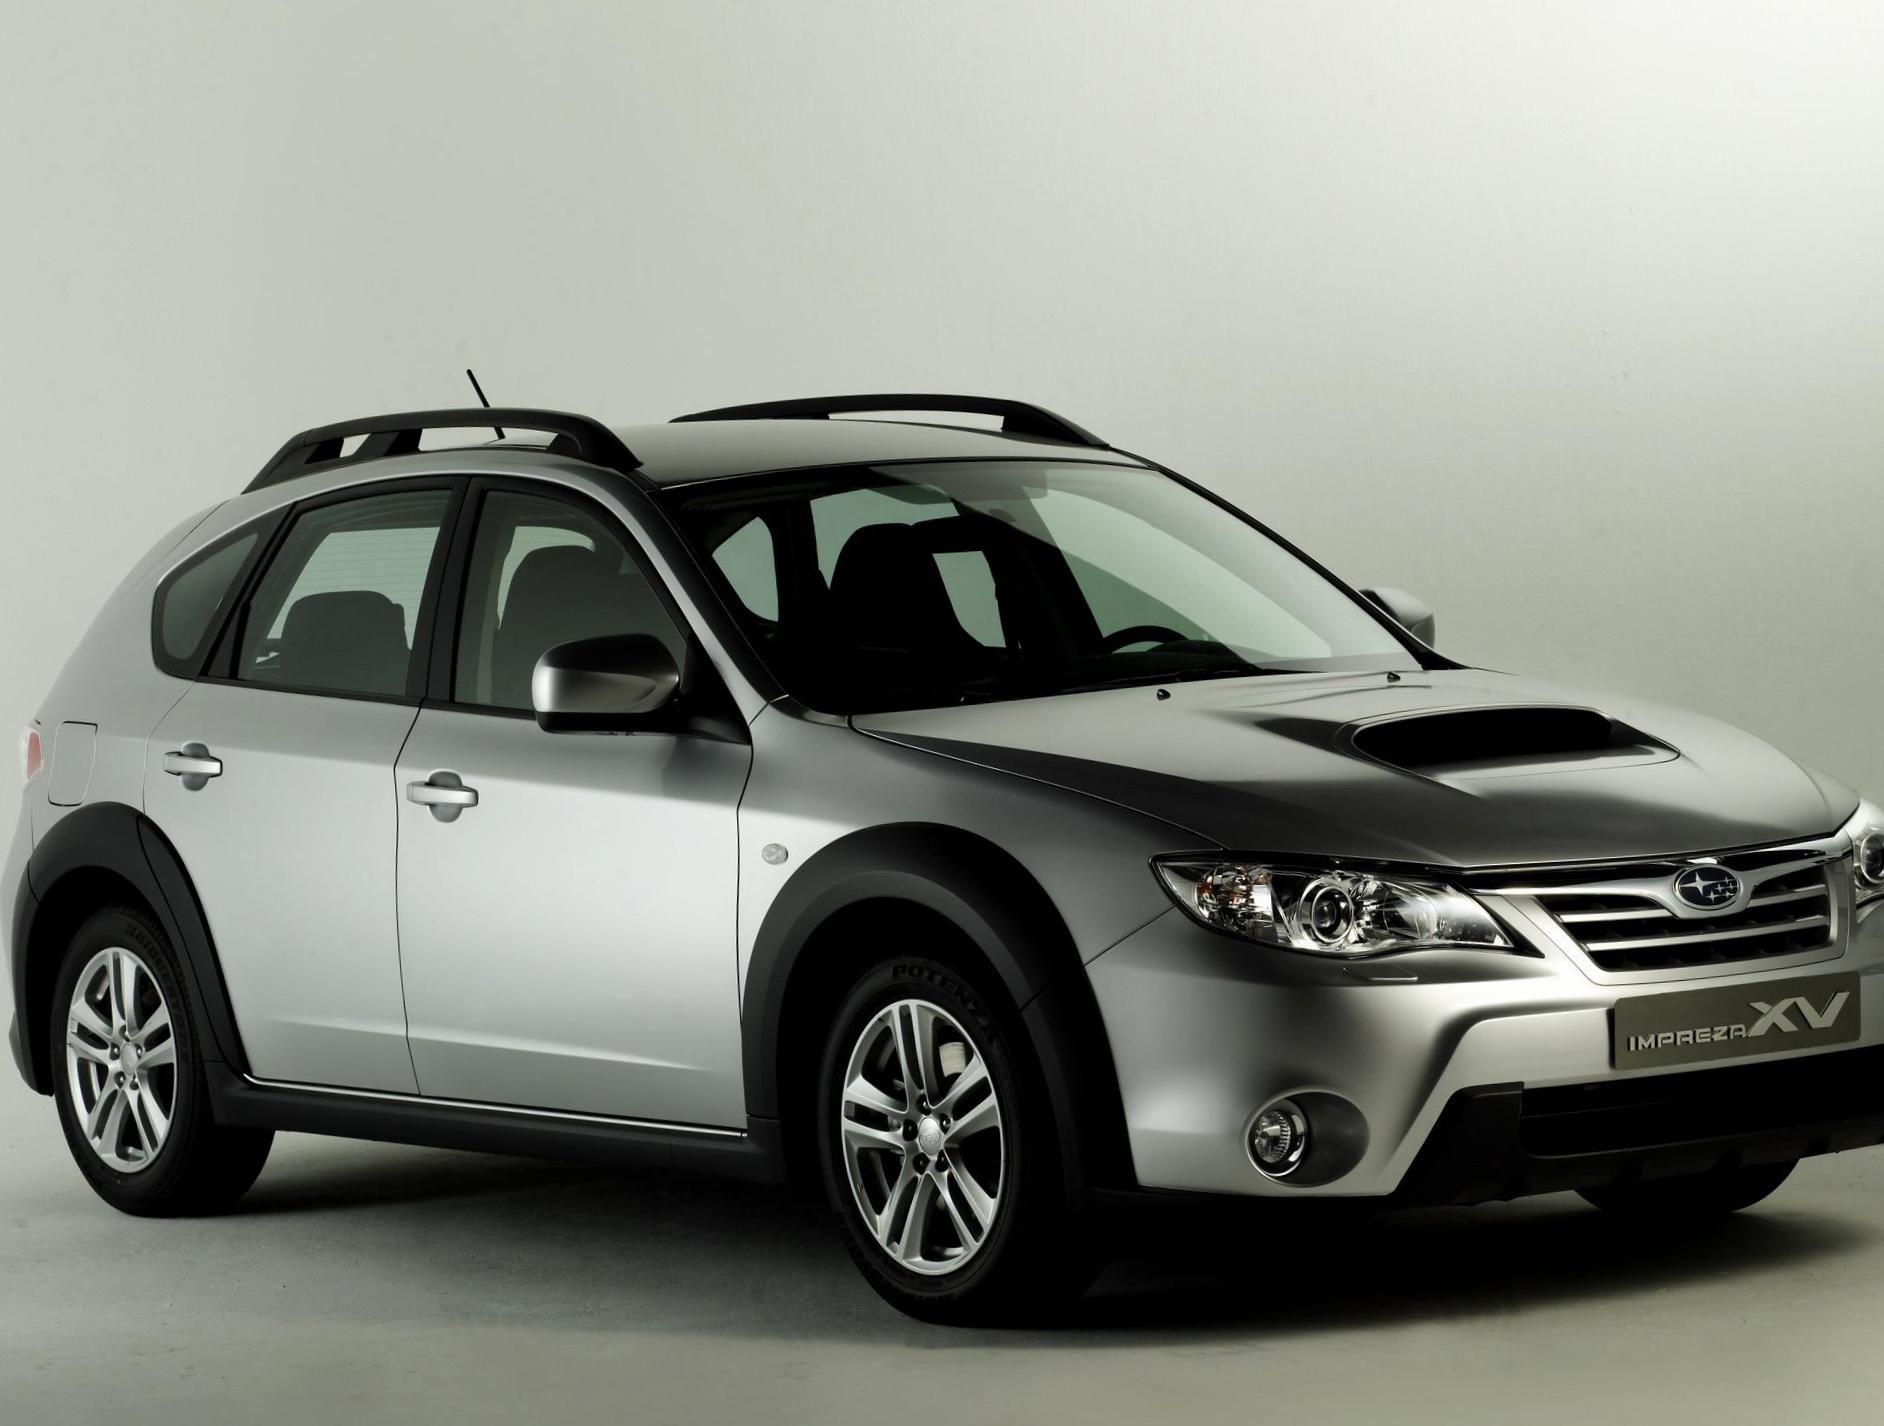 Subaru Impreza XV reviews 2014